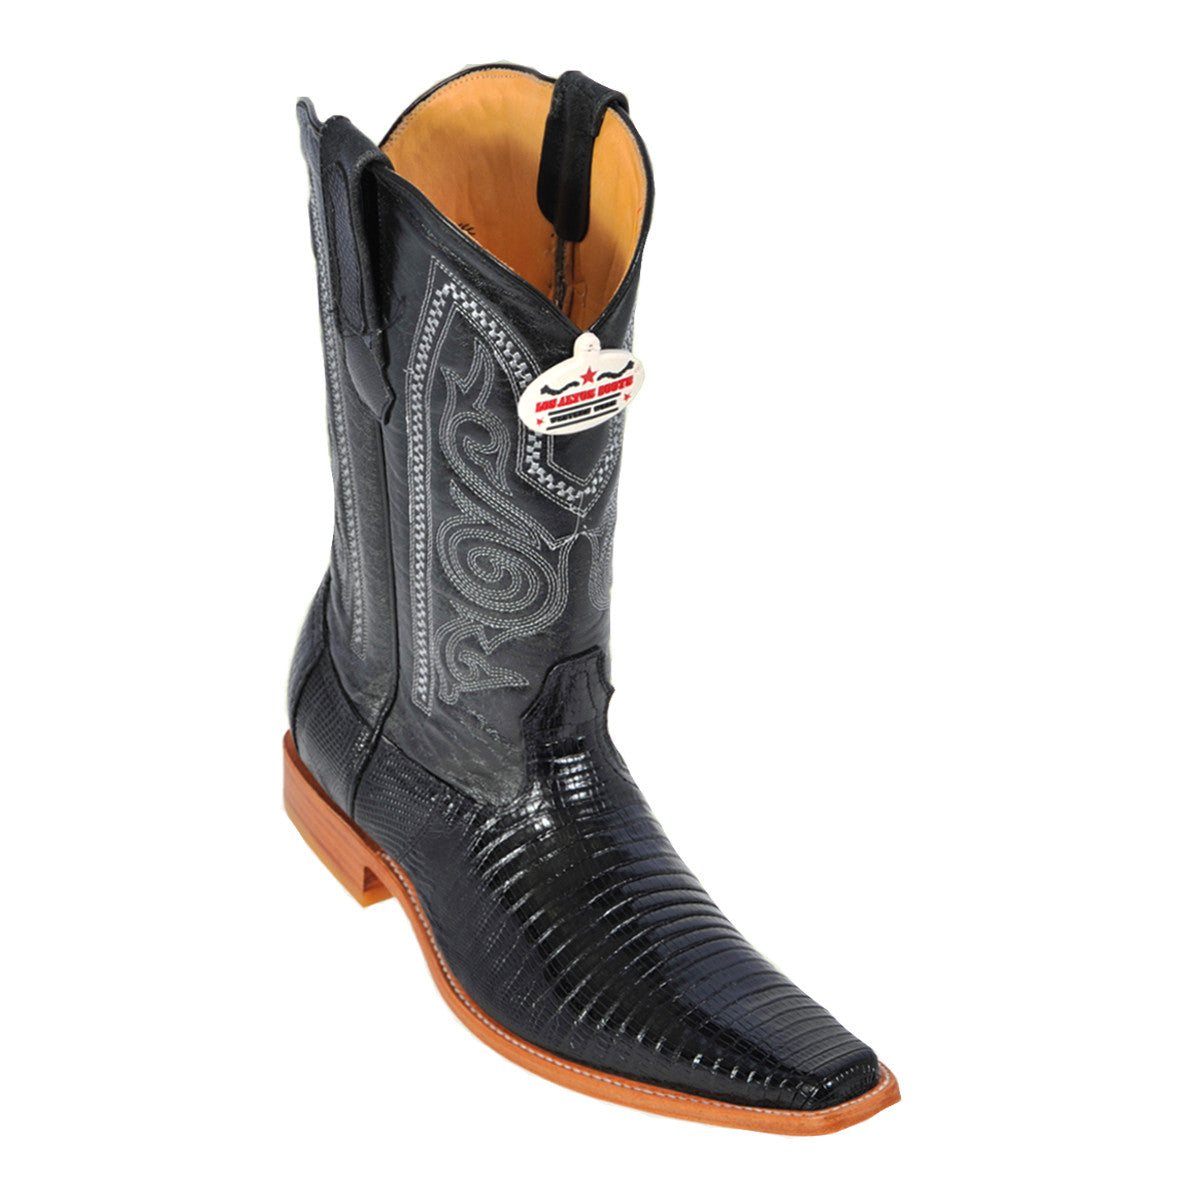 Los Altos Boots Narrow Square Toe Lizard